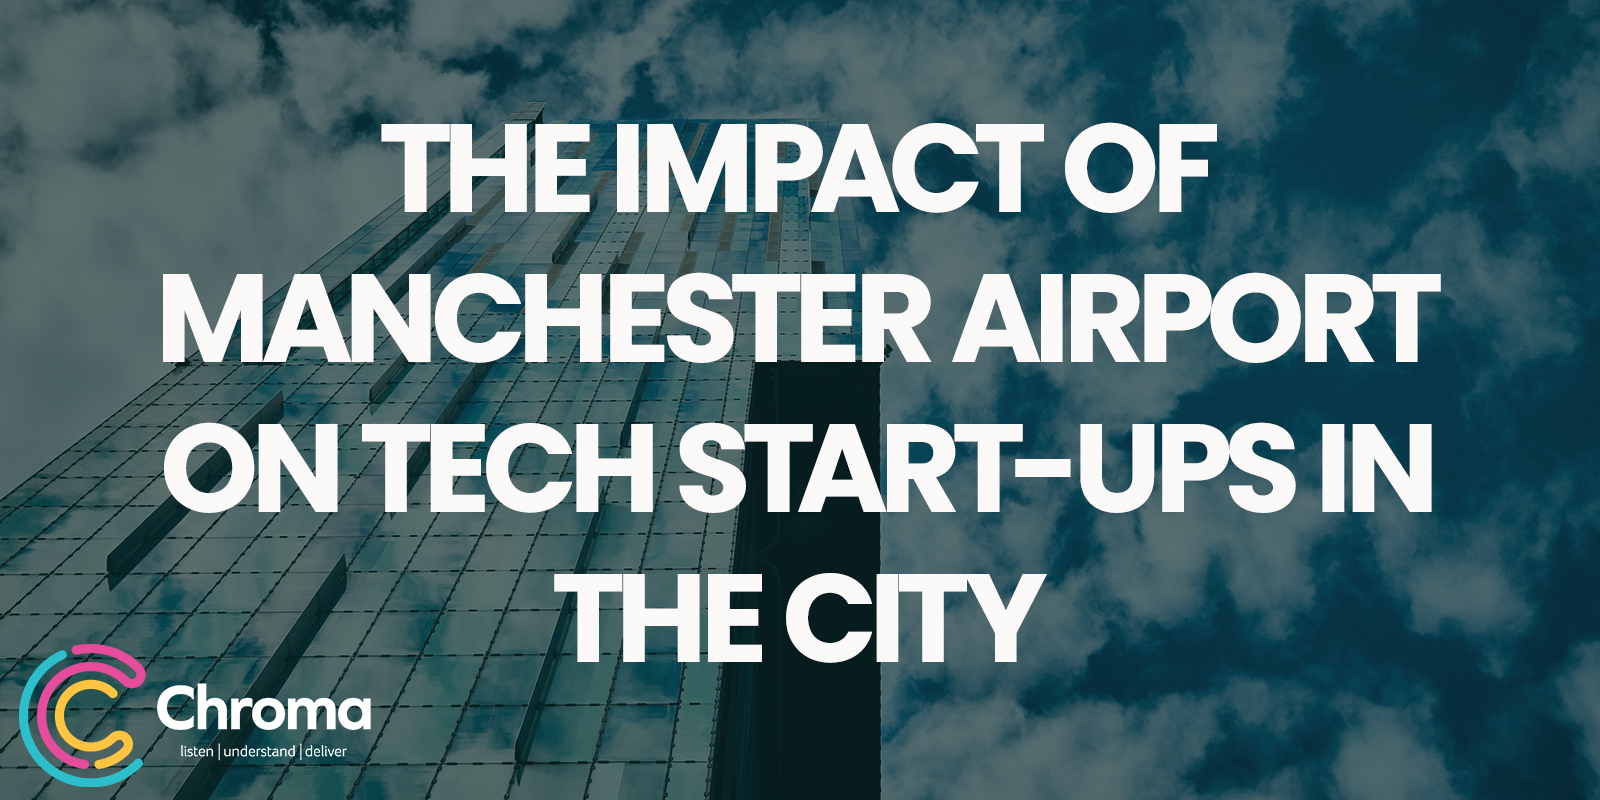 The Impact of Manchester Airport on tech start-ups in the city